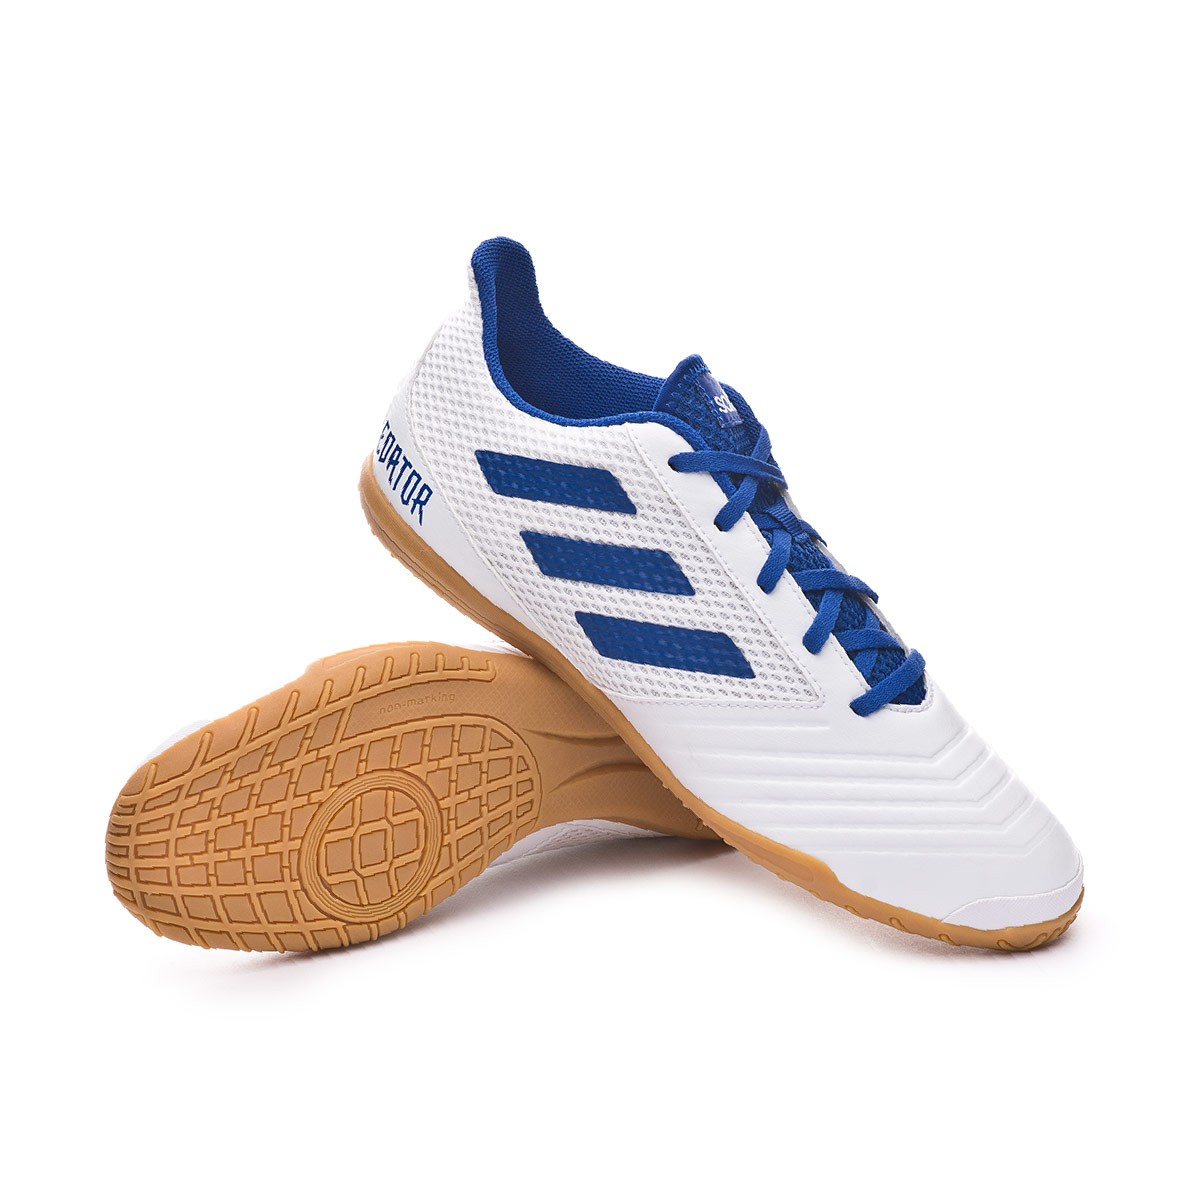 31966db36 Futsal Boot adidas Predator Tango 19.4 IN Sala White-Bold blue - Football  store Fútbol Emotion